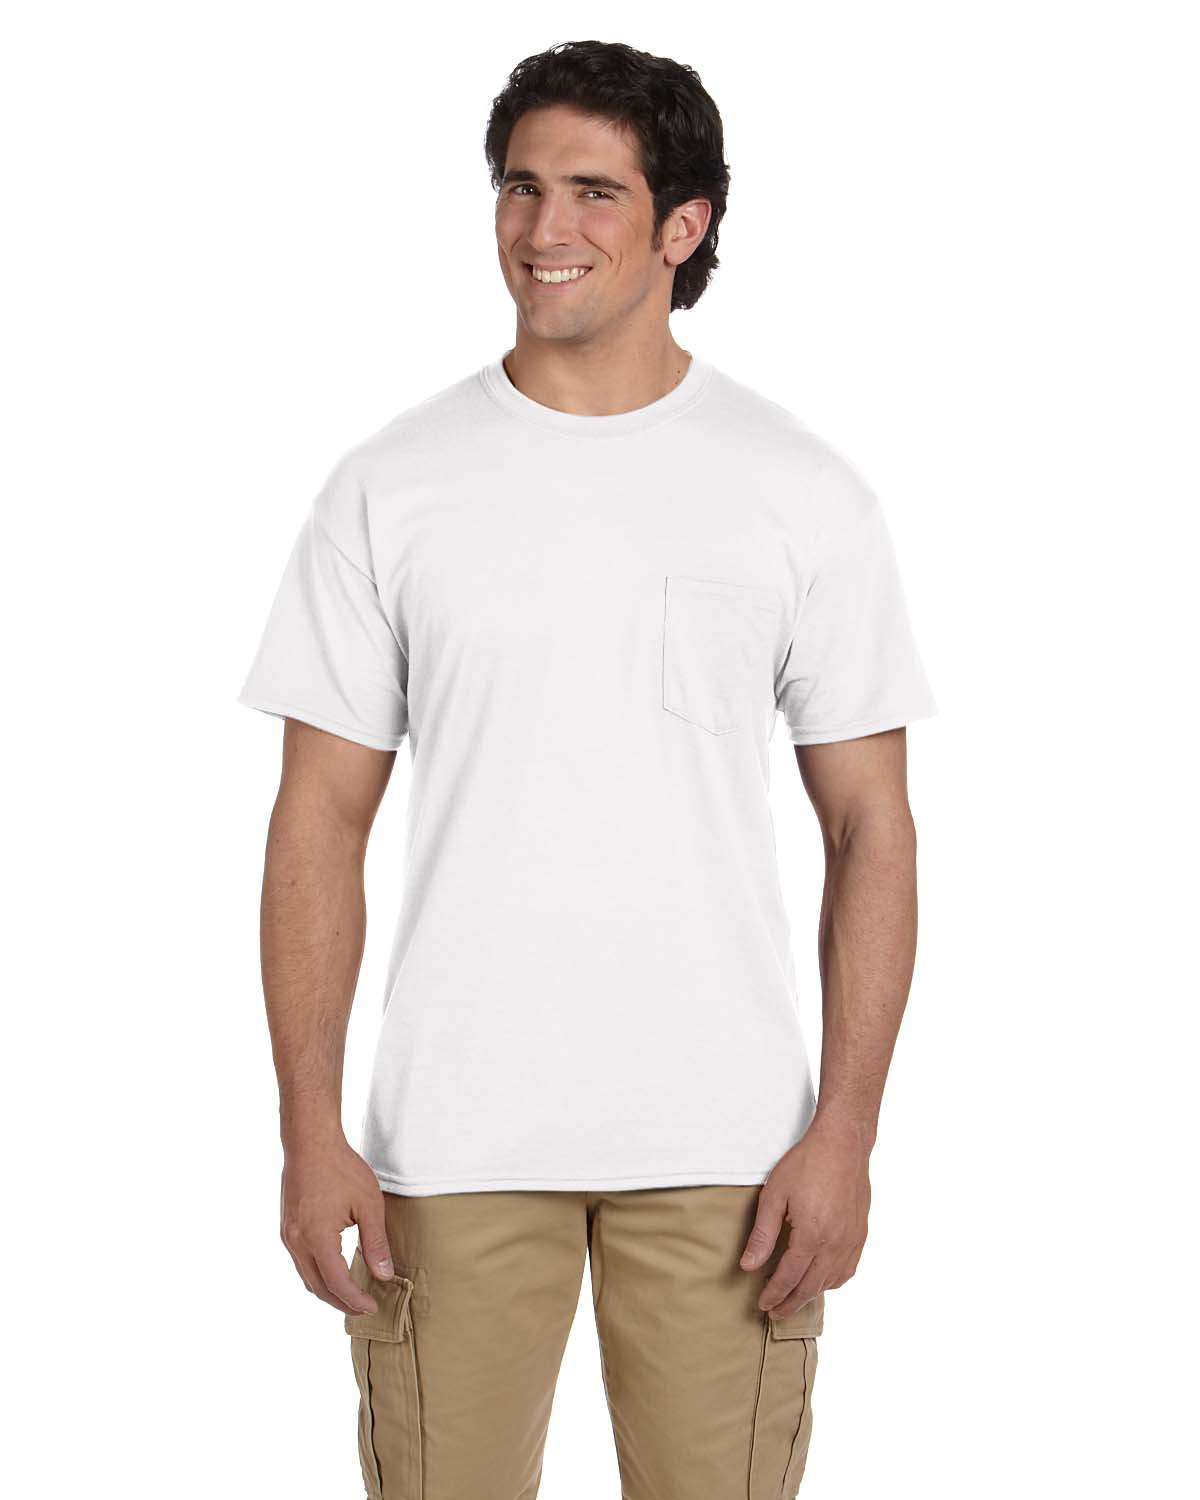 Adult DryBlend® 5.5 oz. 50/50 Pocket T-Shirt